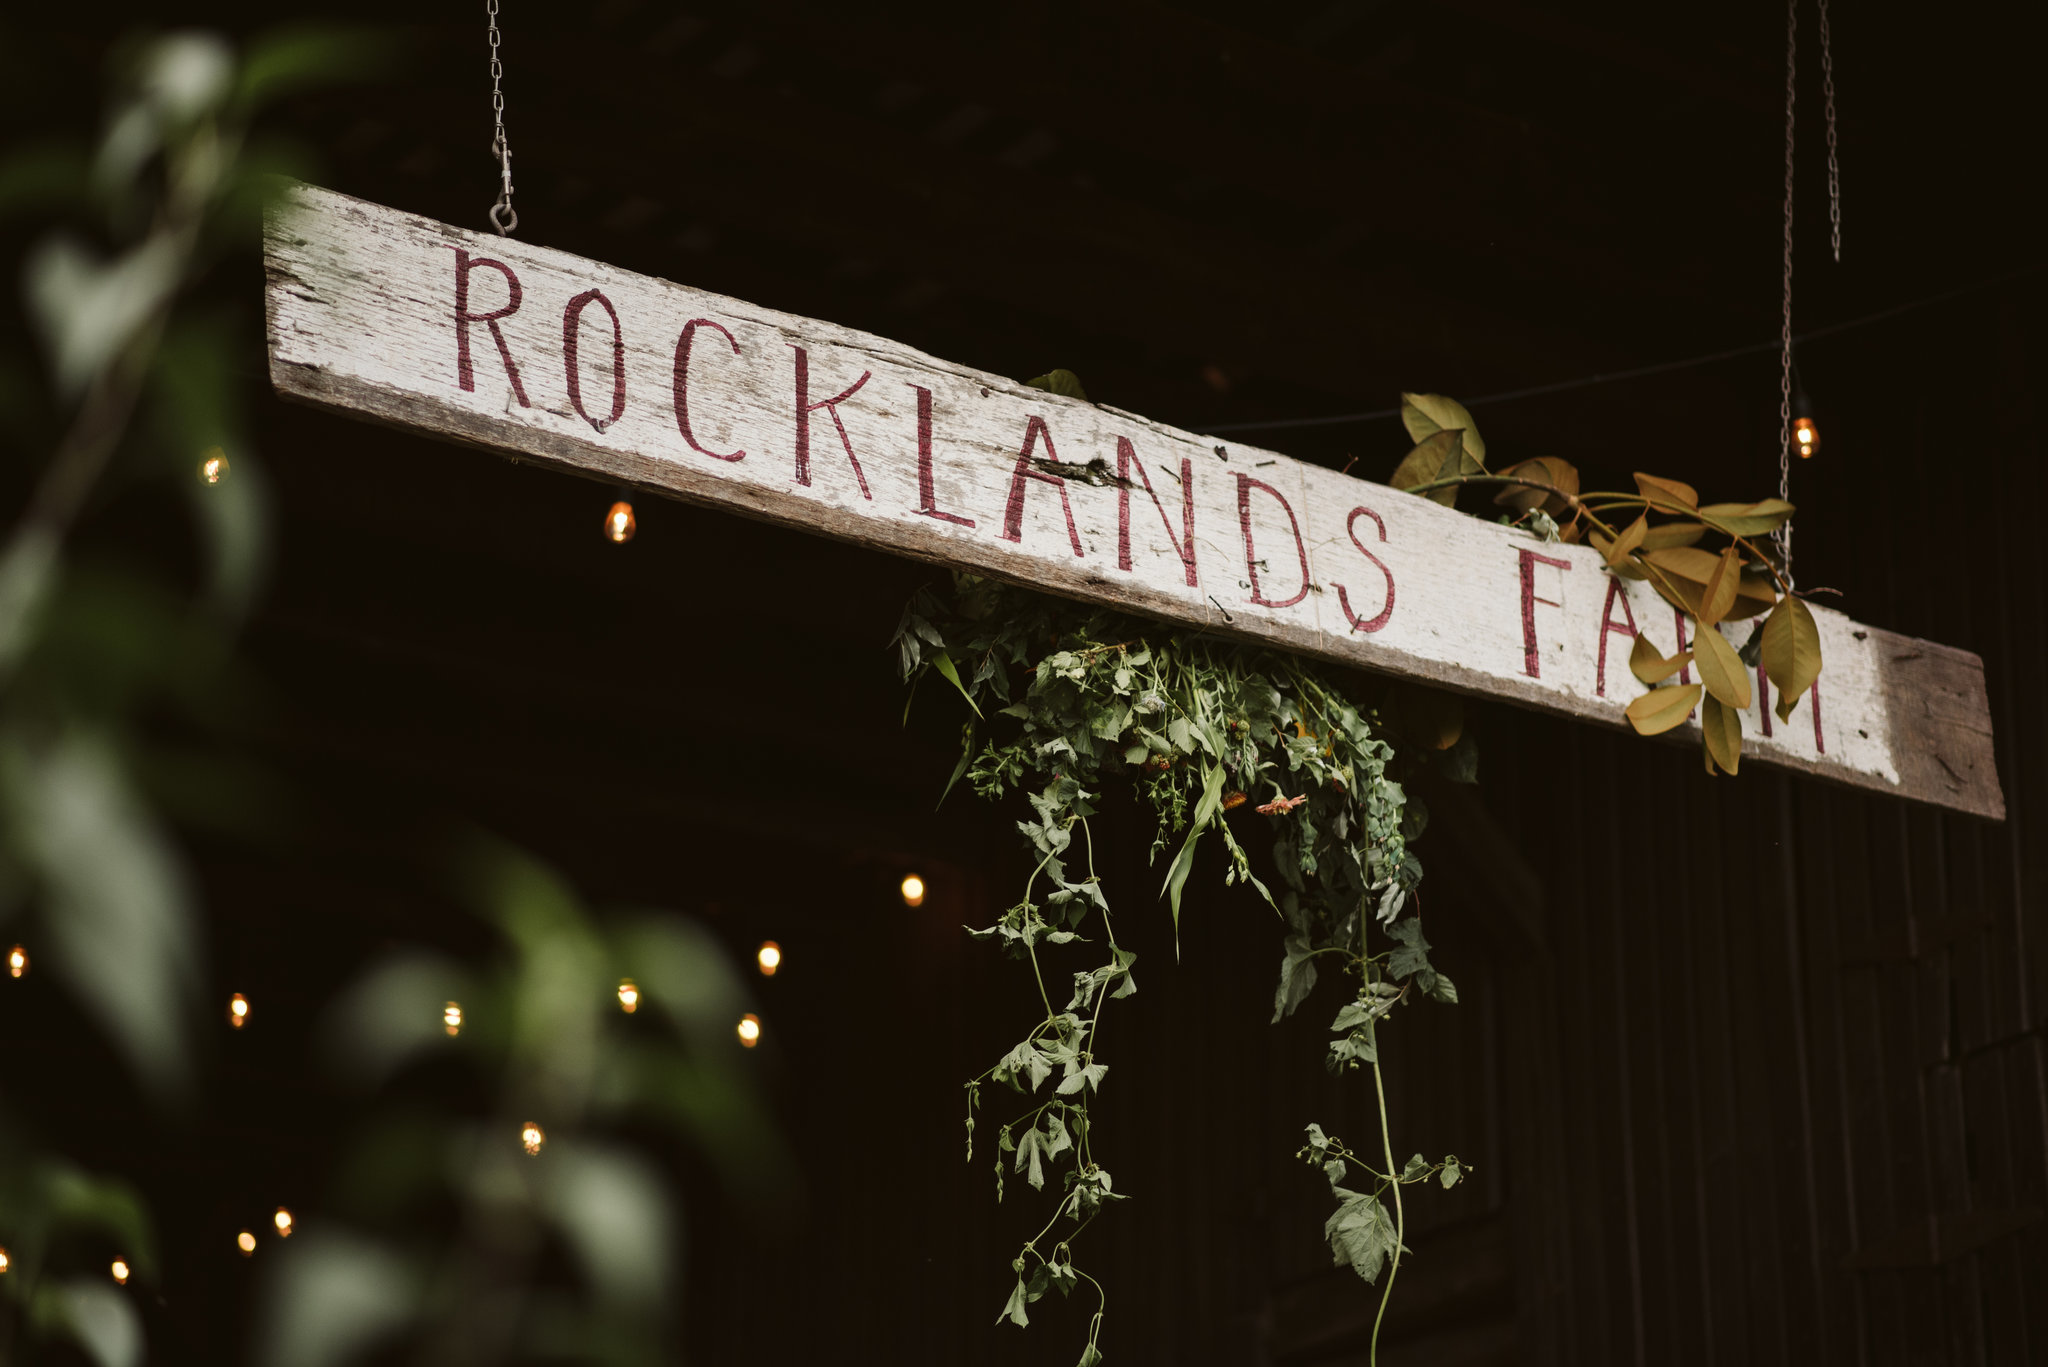 Rocklands Farm, Maryland, Intimate Wedding, Baltimore Wedding Photographer, Sungold Flower Co, Rustic, Romantic, Barn Wedding, Hand Painted Sign Hanging